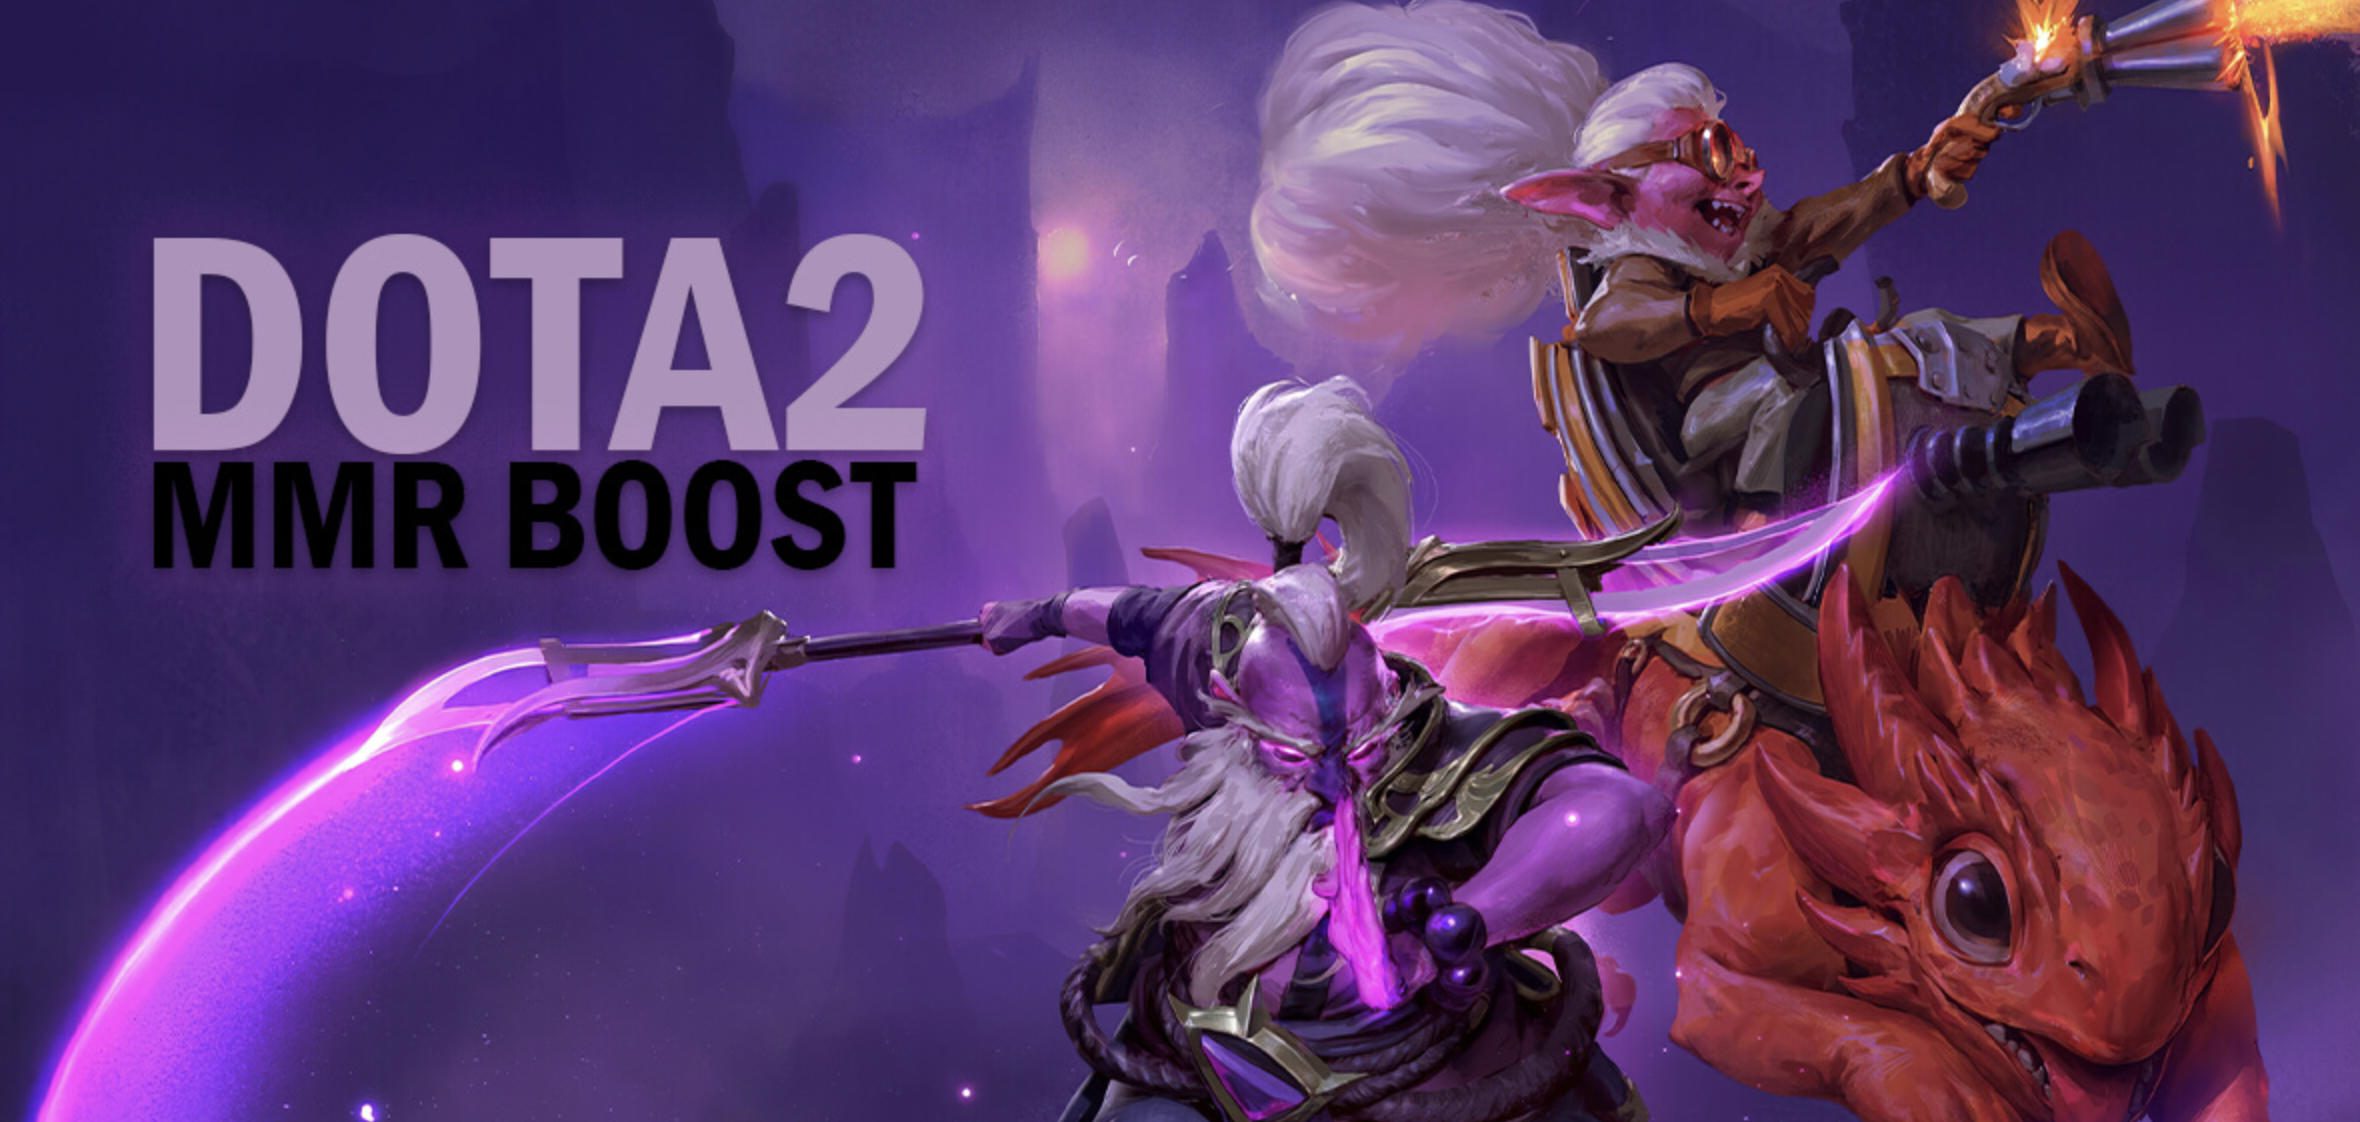 The A To Z About Dota 2 Mmr Boost